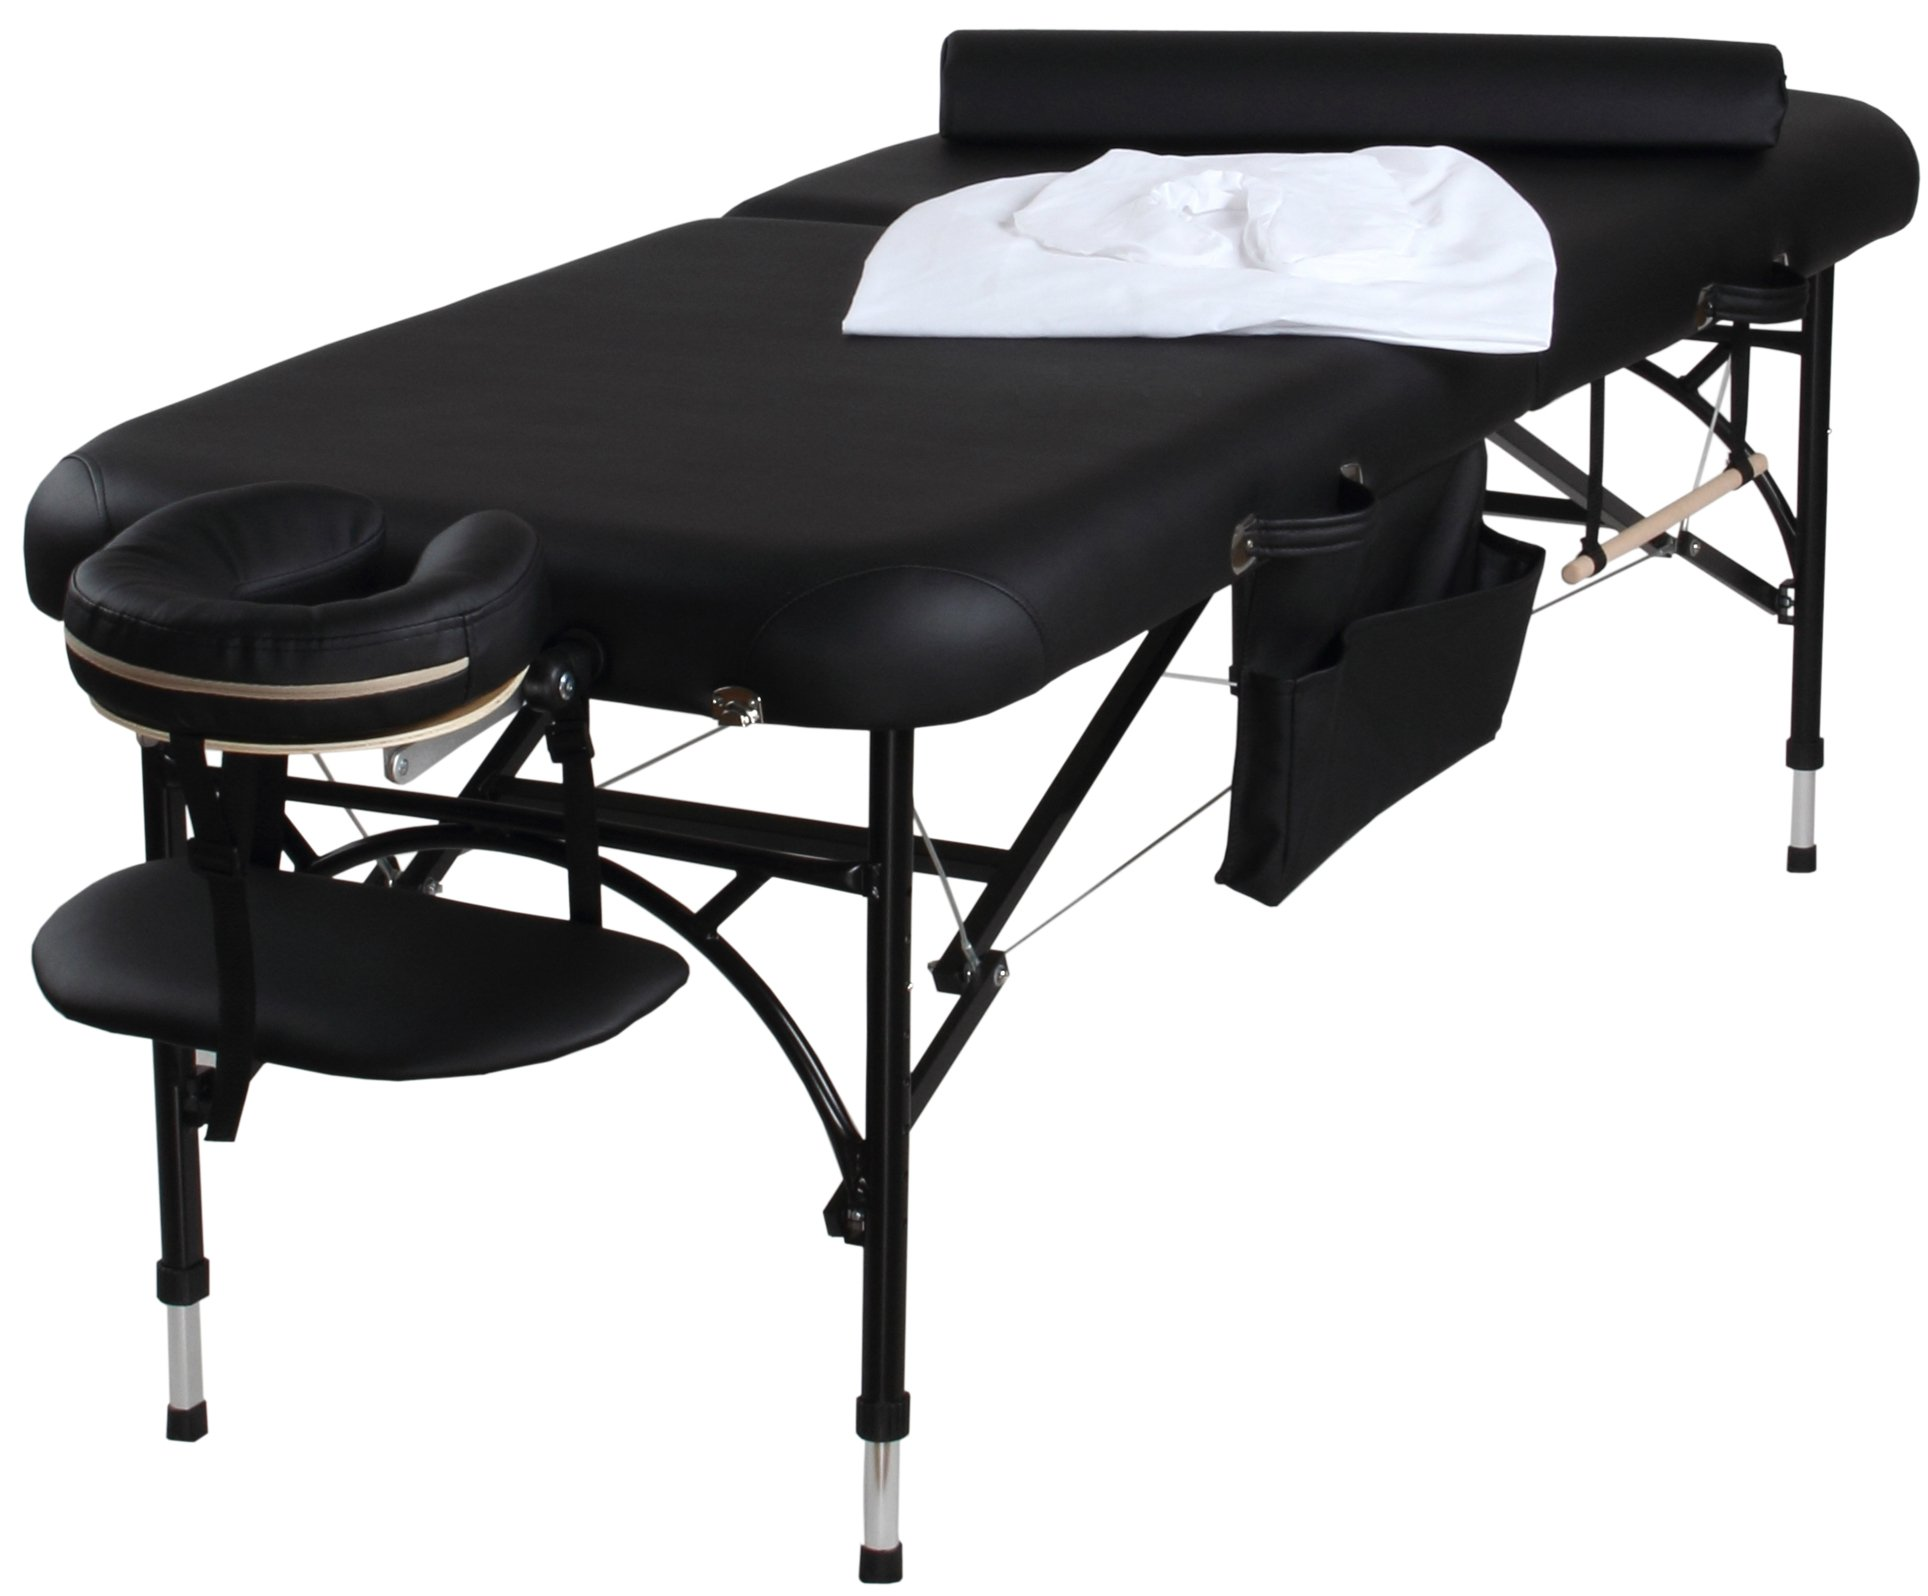 Sierra Comfort All Inclusive Portable Massage Table with Light-Weight Aluminum Frame, Aluminum/Black